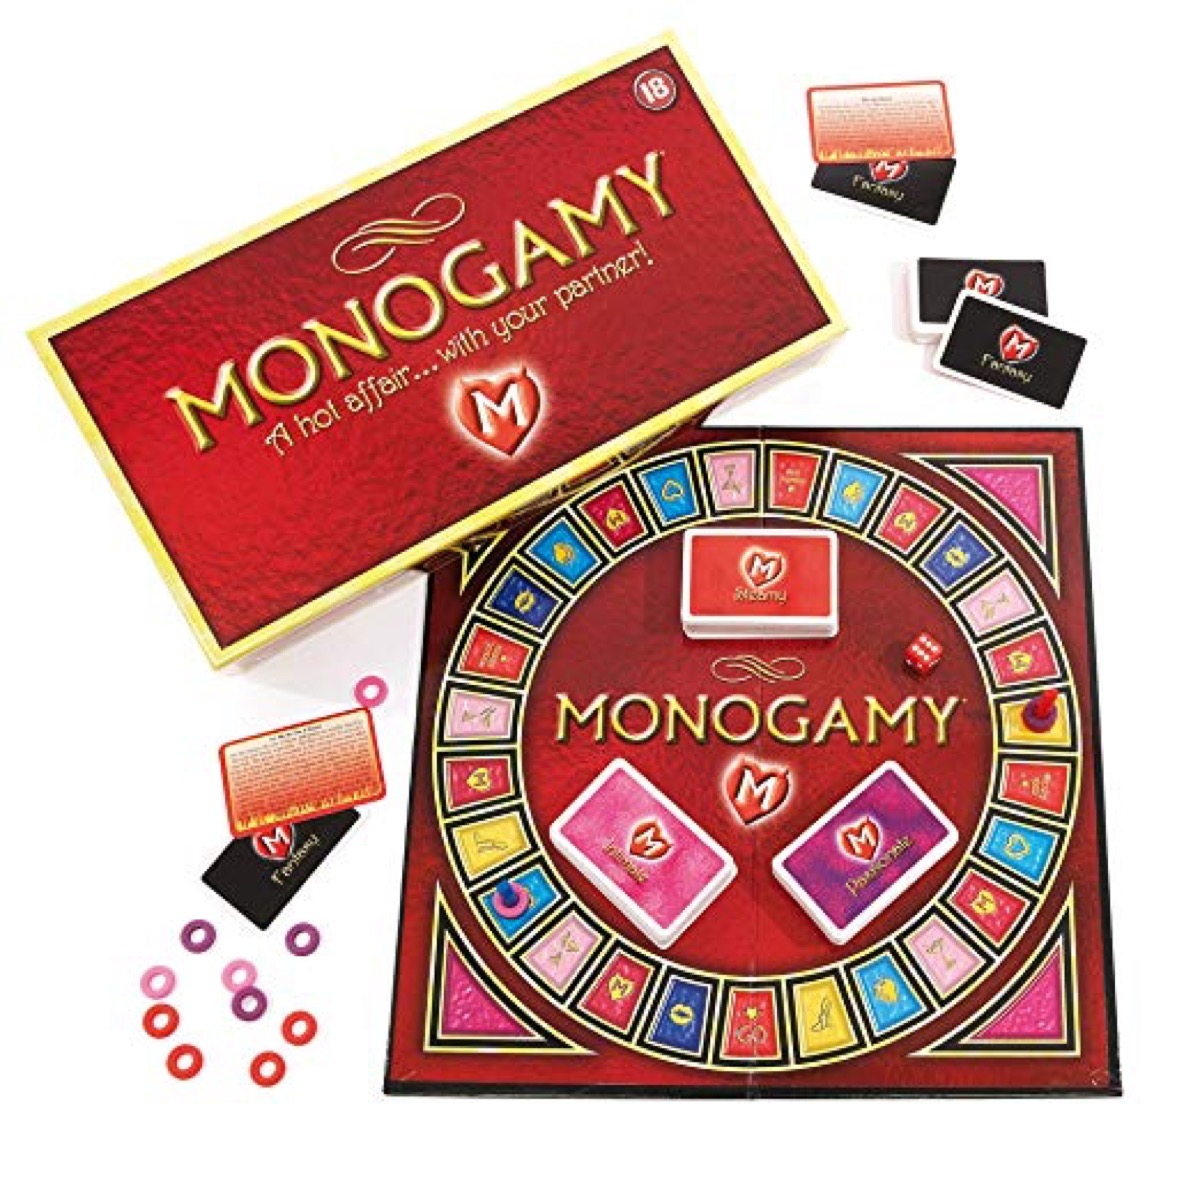 Monogamy board games for couples